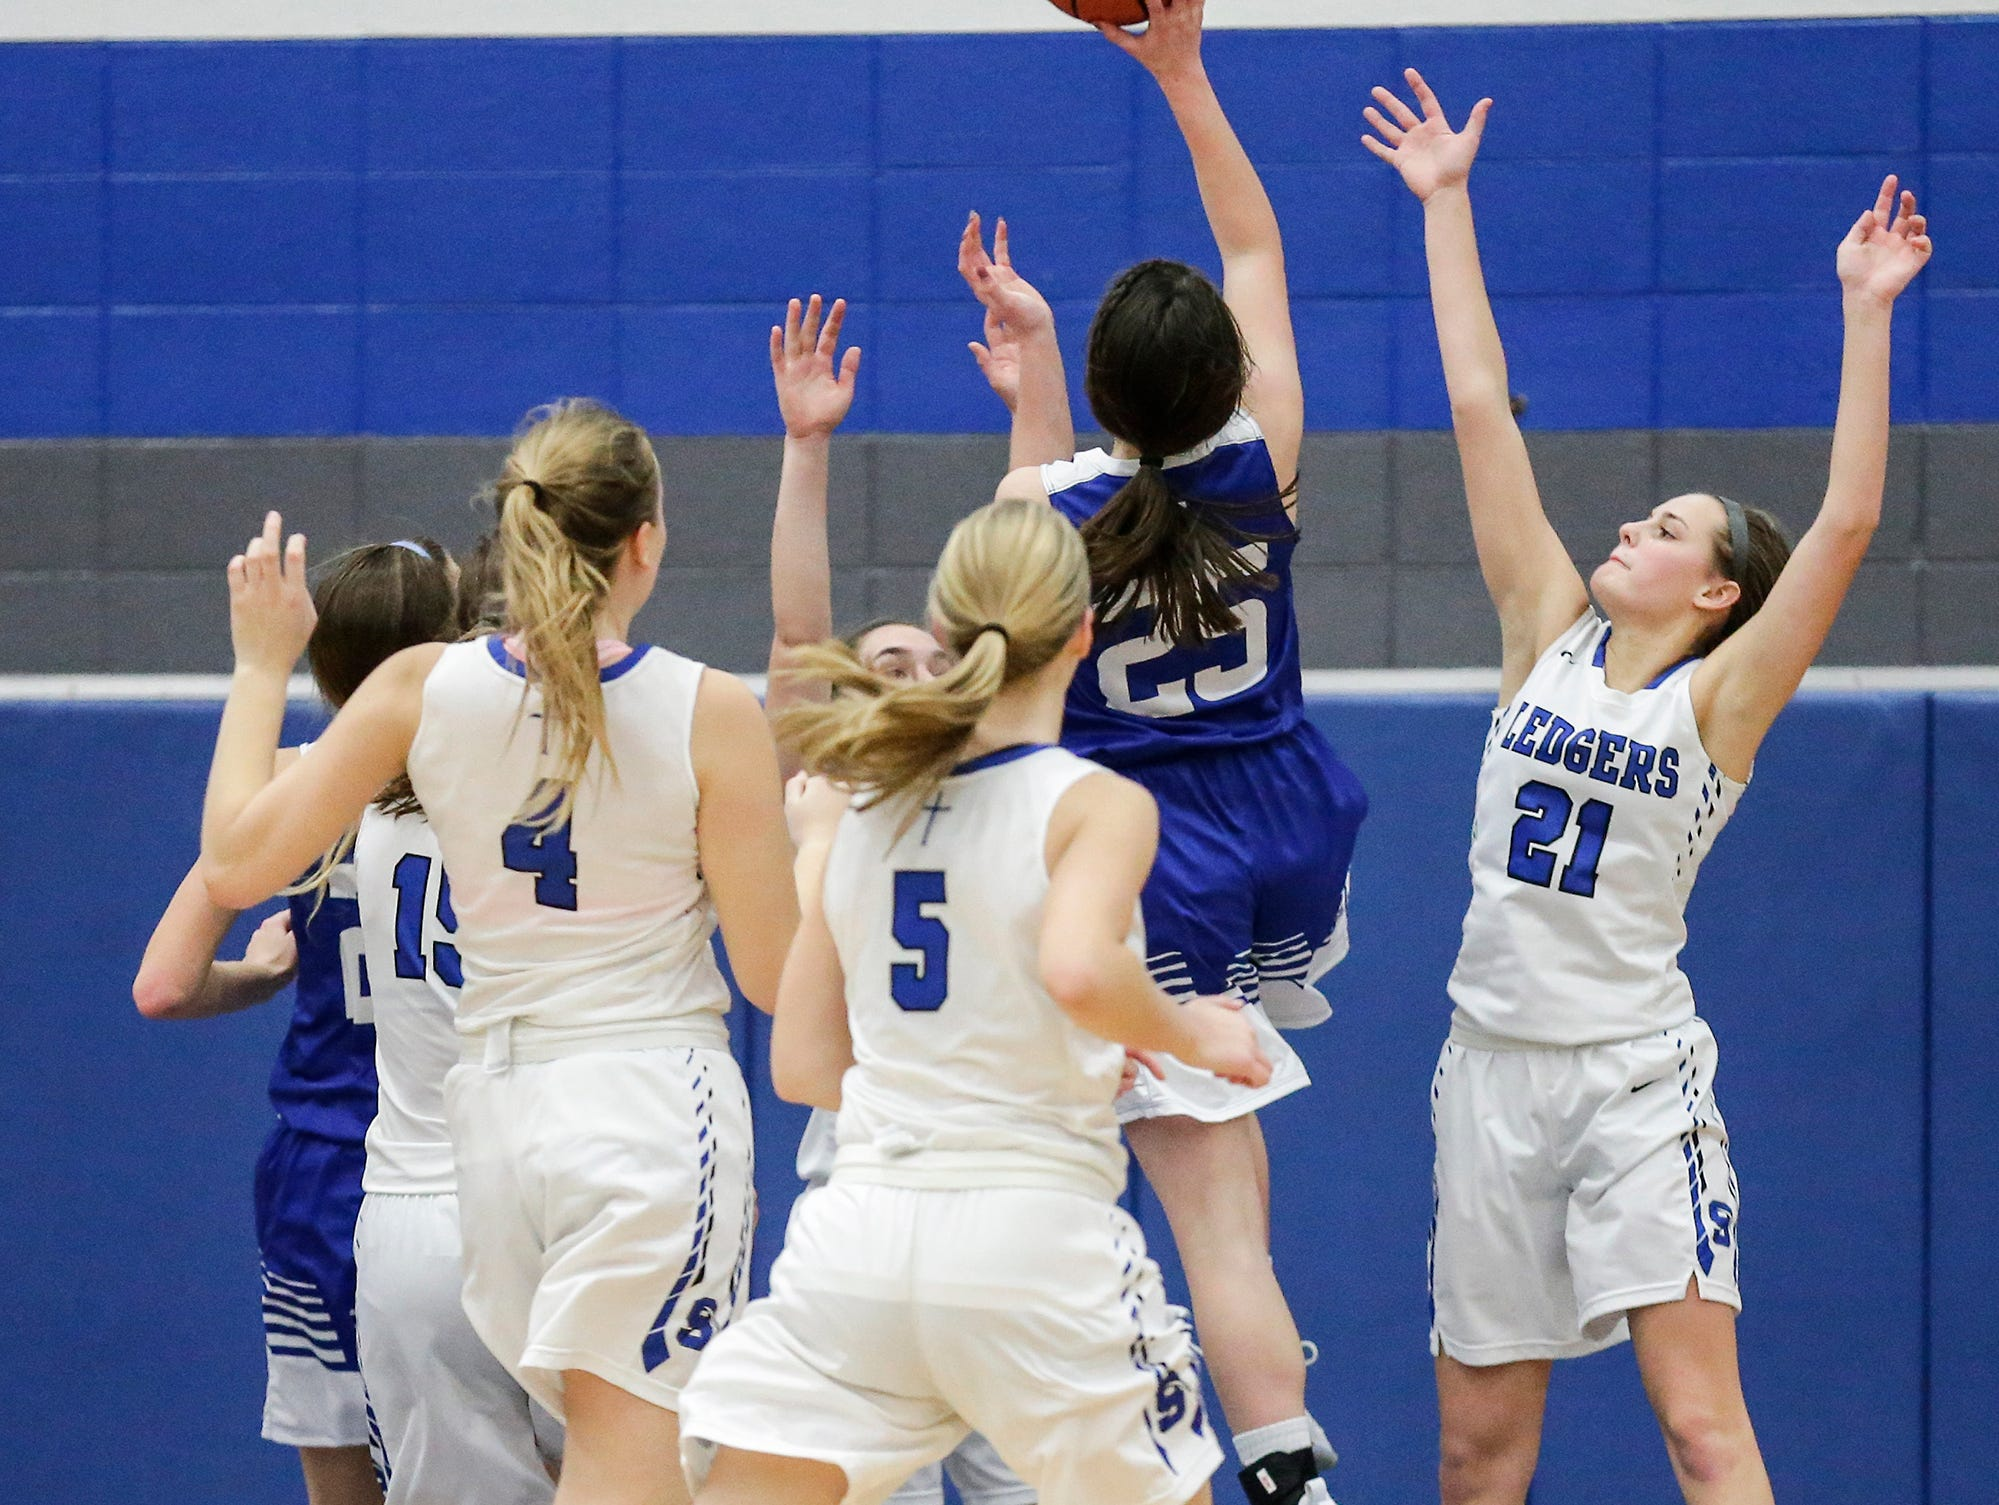 Winnebago Lutheran Academy girls basketball's Geneva Hewitt goes up for a basket against St. Mary's Springs Academy during their game Tuesday, December 18, 2018 in Fond du Lac. Winnebago Lutheran Academy won the game 58-54. Doug Raflik/USA TODAY NETWORK-Wisconsin